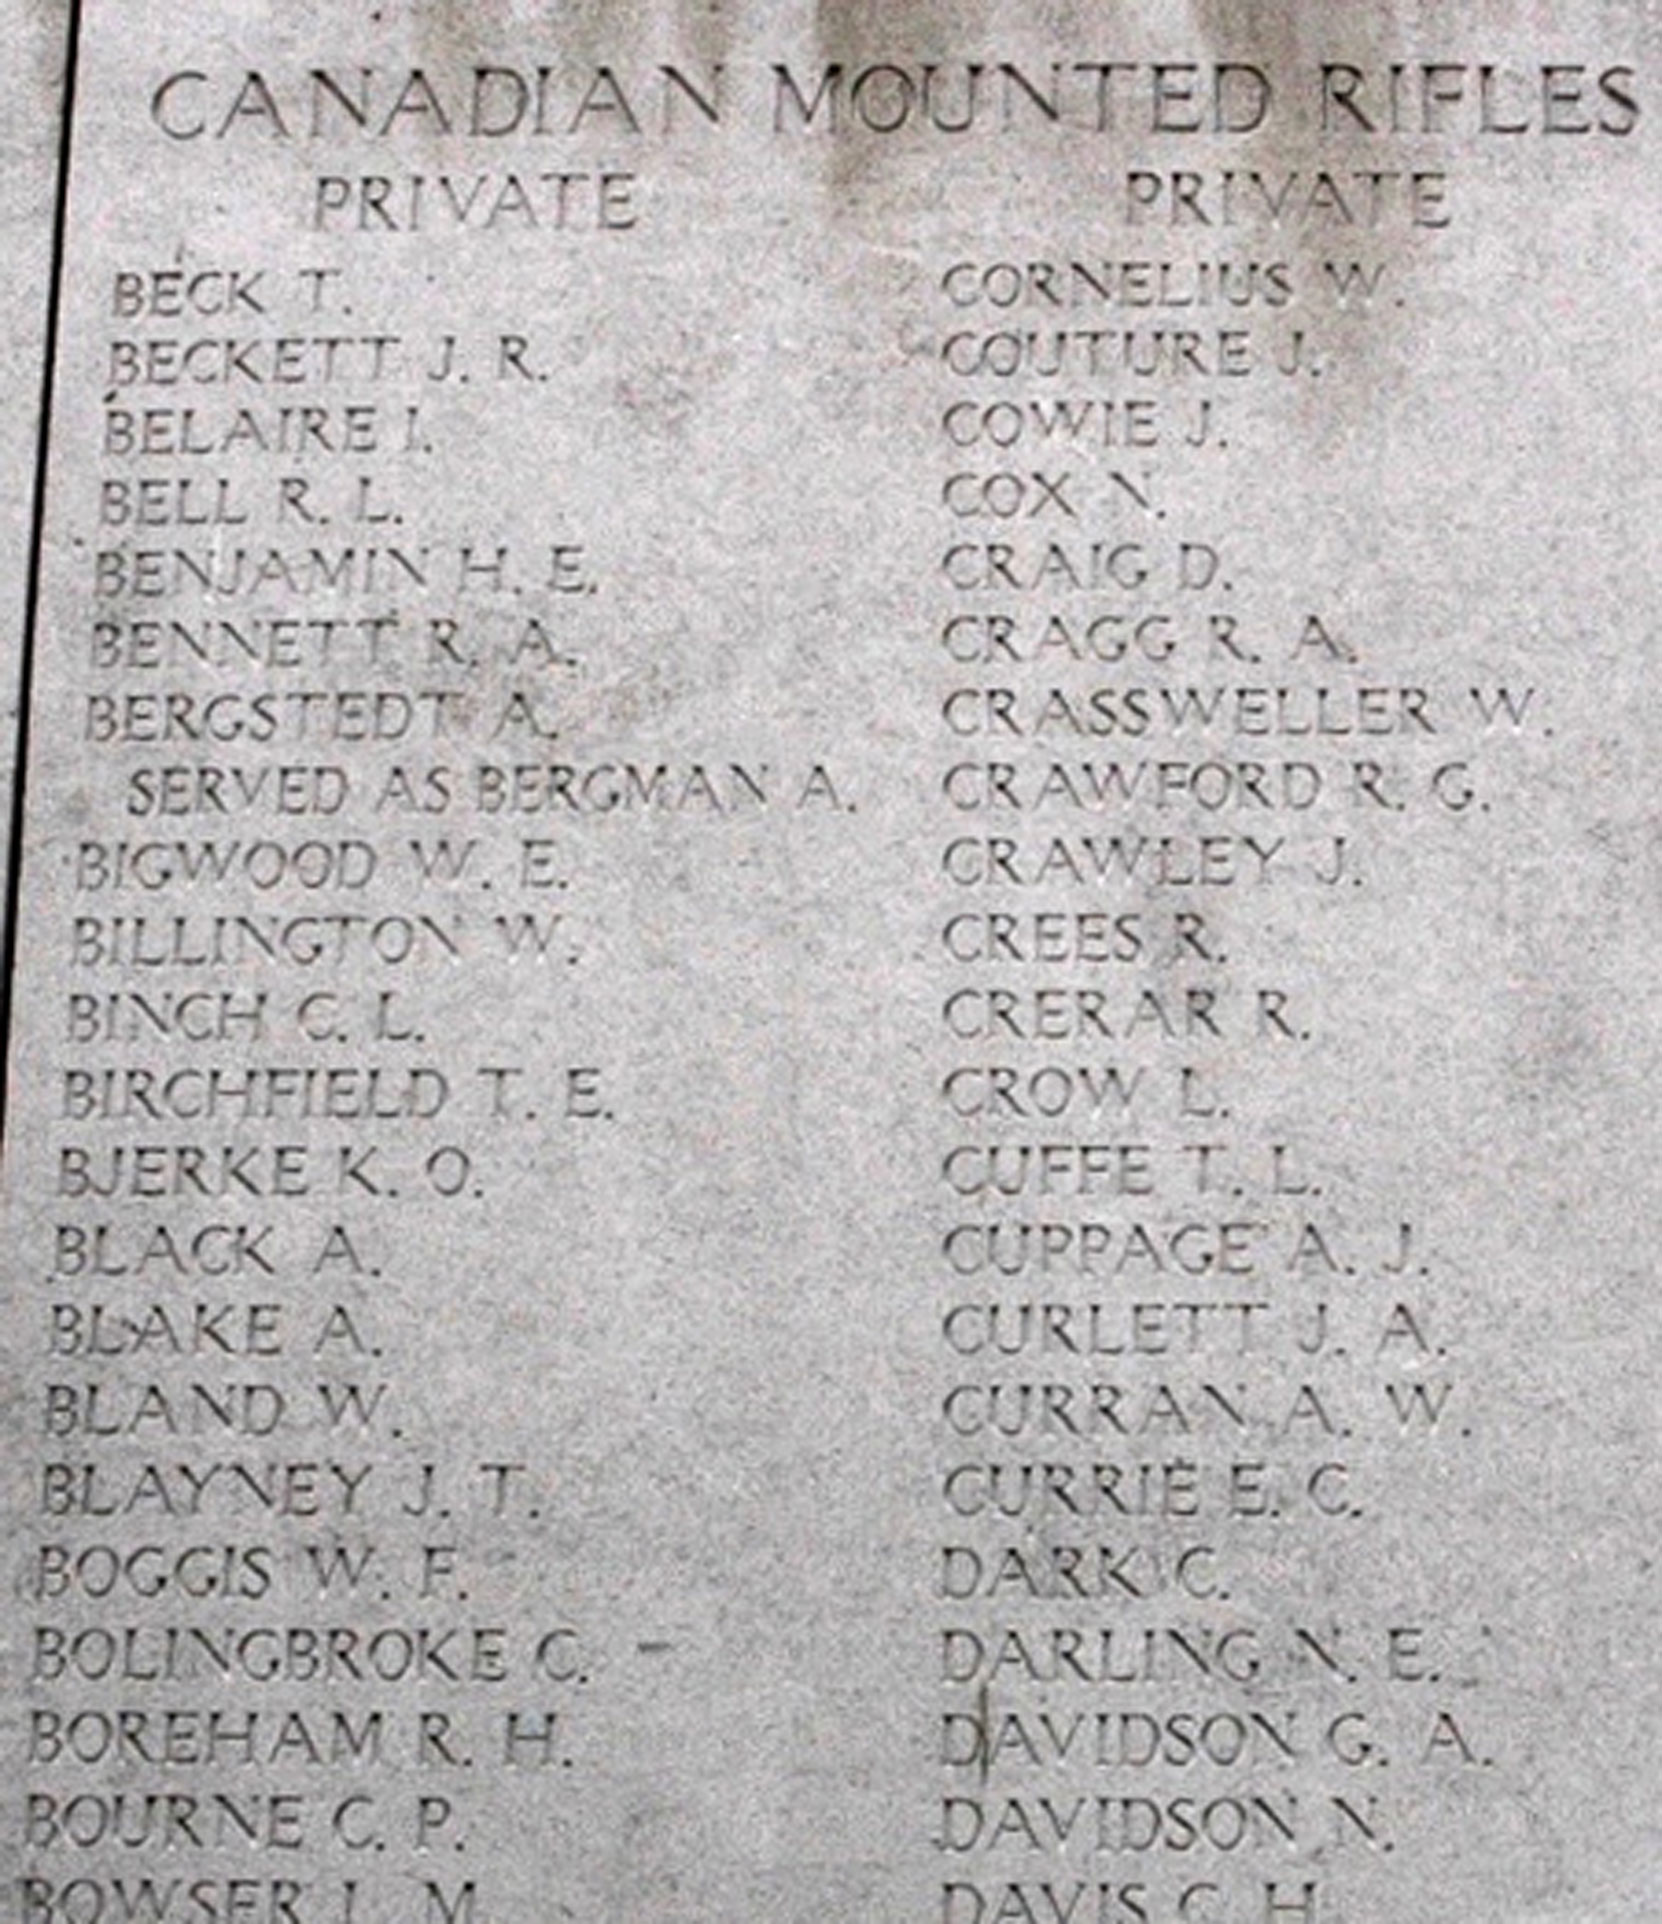 Detail from the Menin Gate, Ypres, Belgium, showing Cowie, J. (photo courtesy of John Cowie)